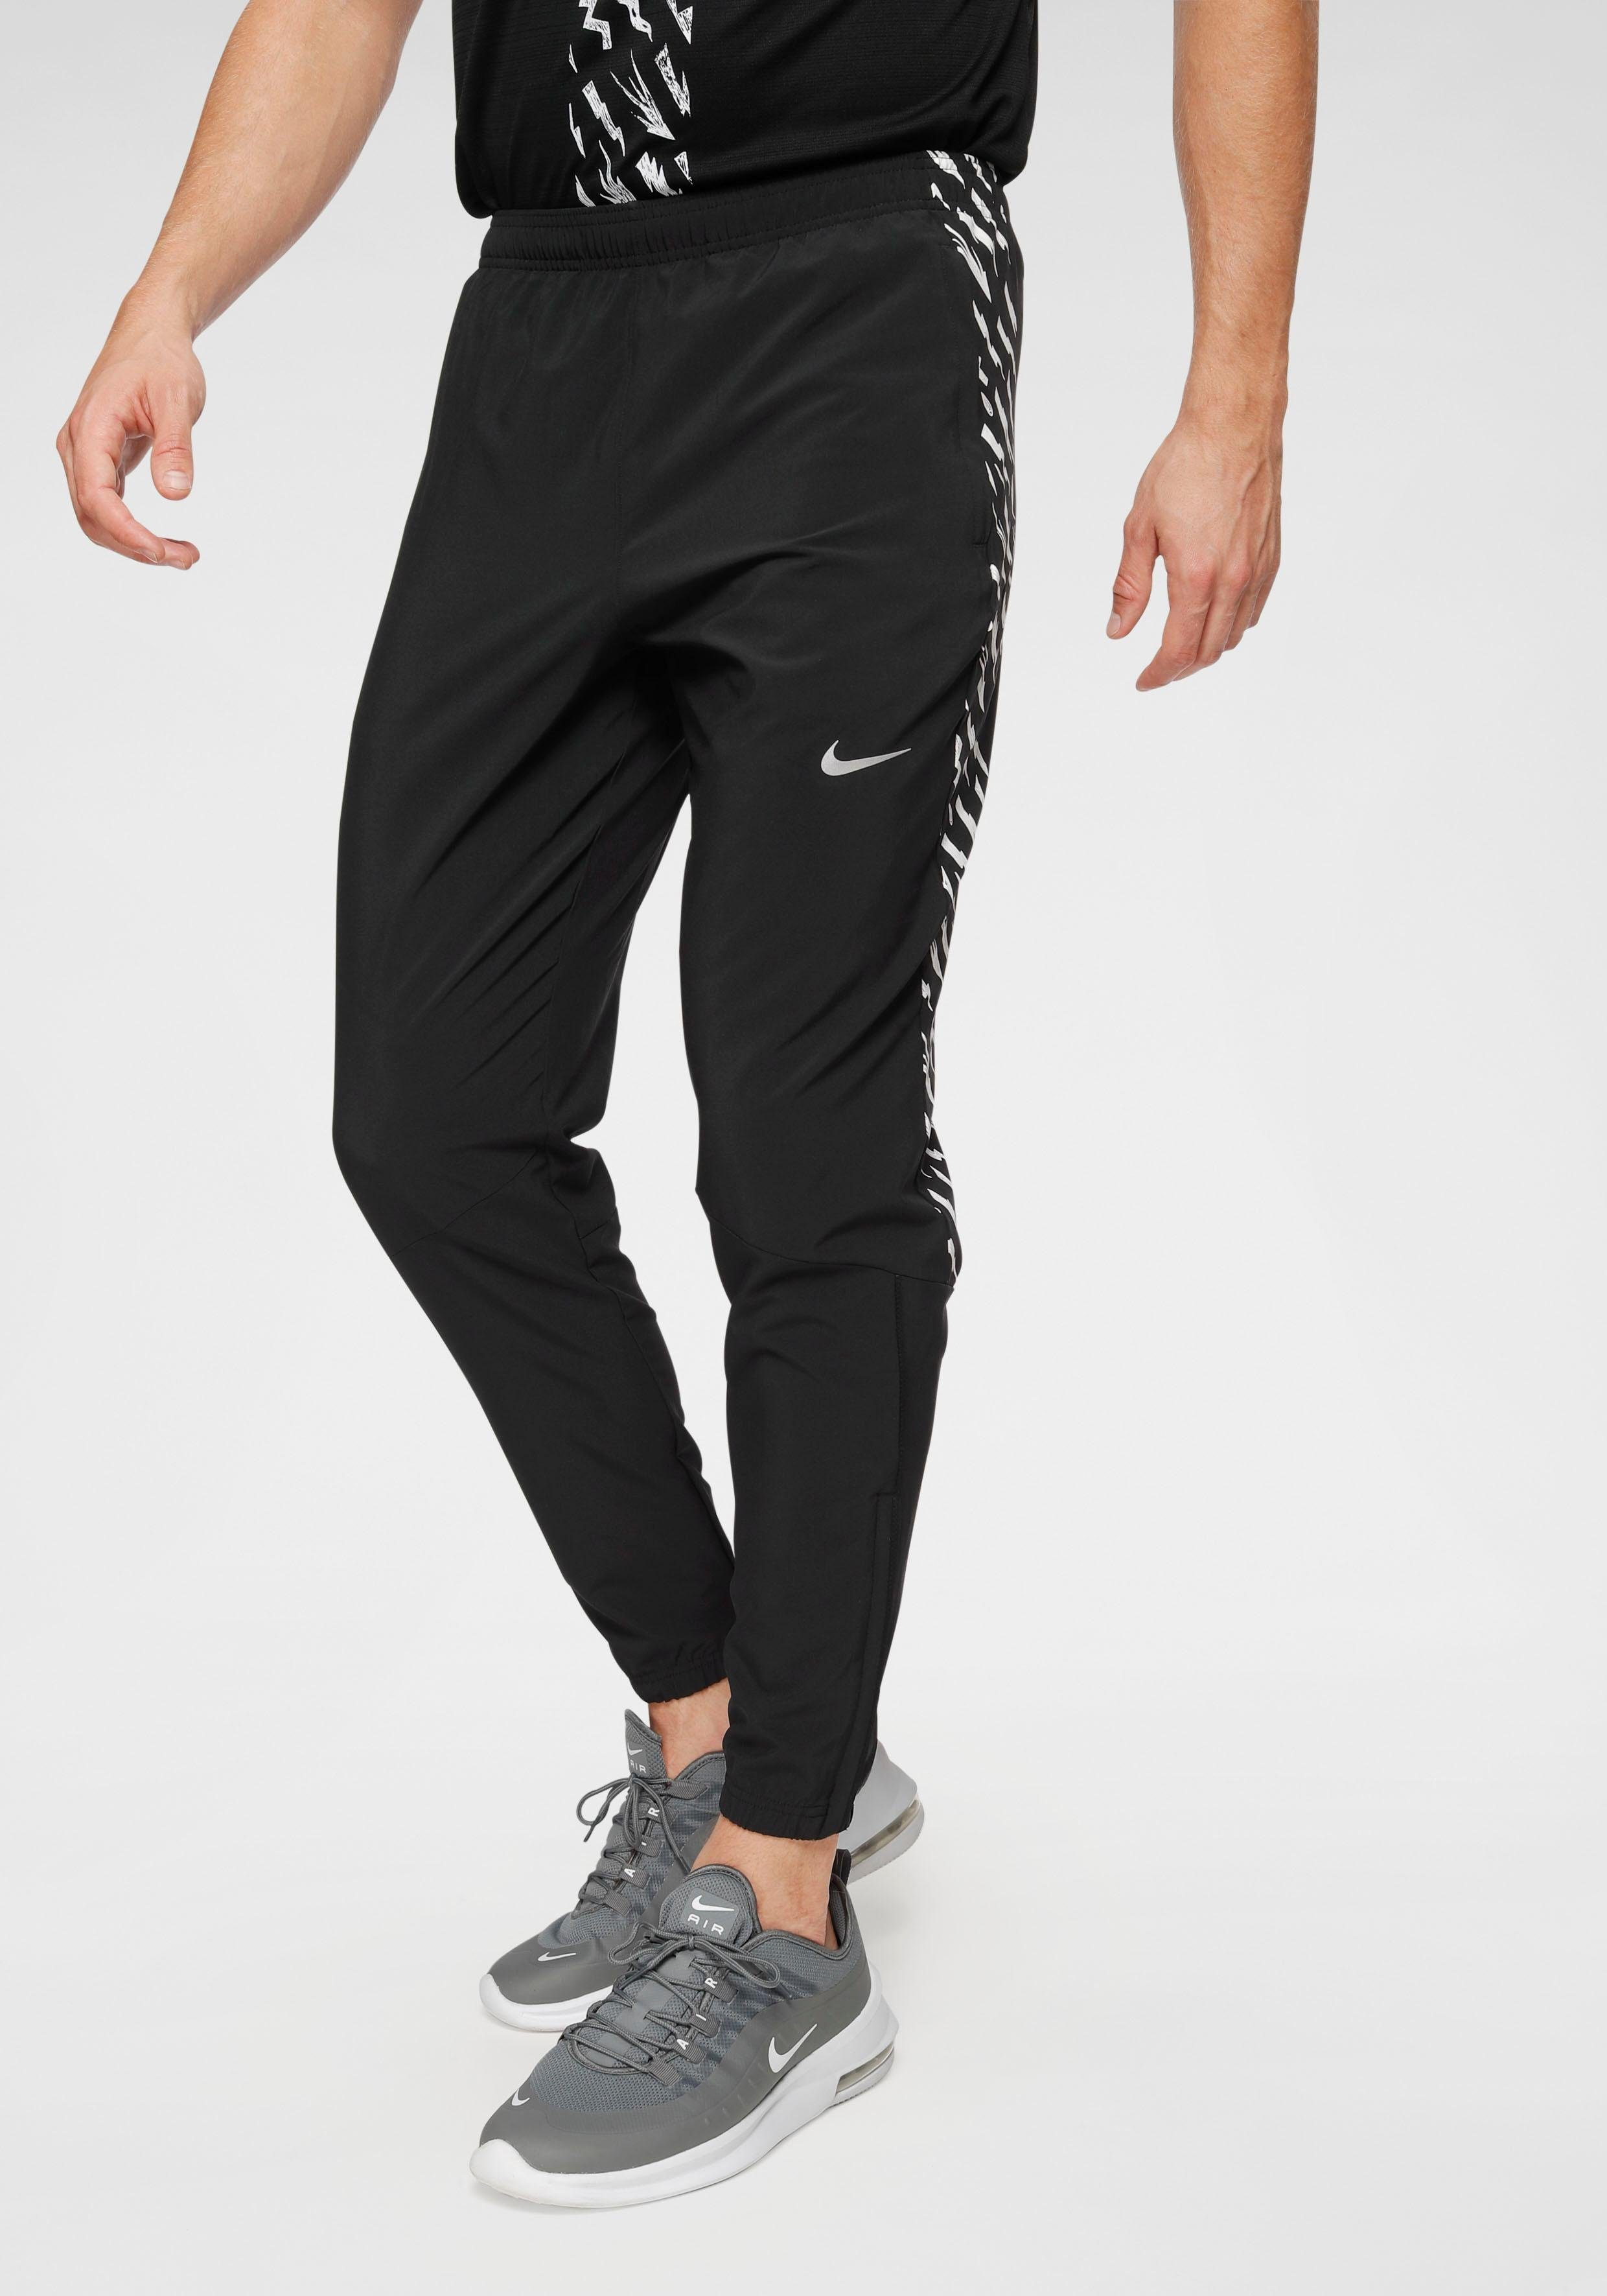 Nike Laufhose »Nike Essential Men's Woven Running Pants« online kaufen | OTTO